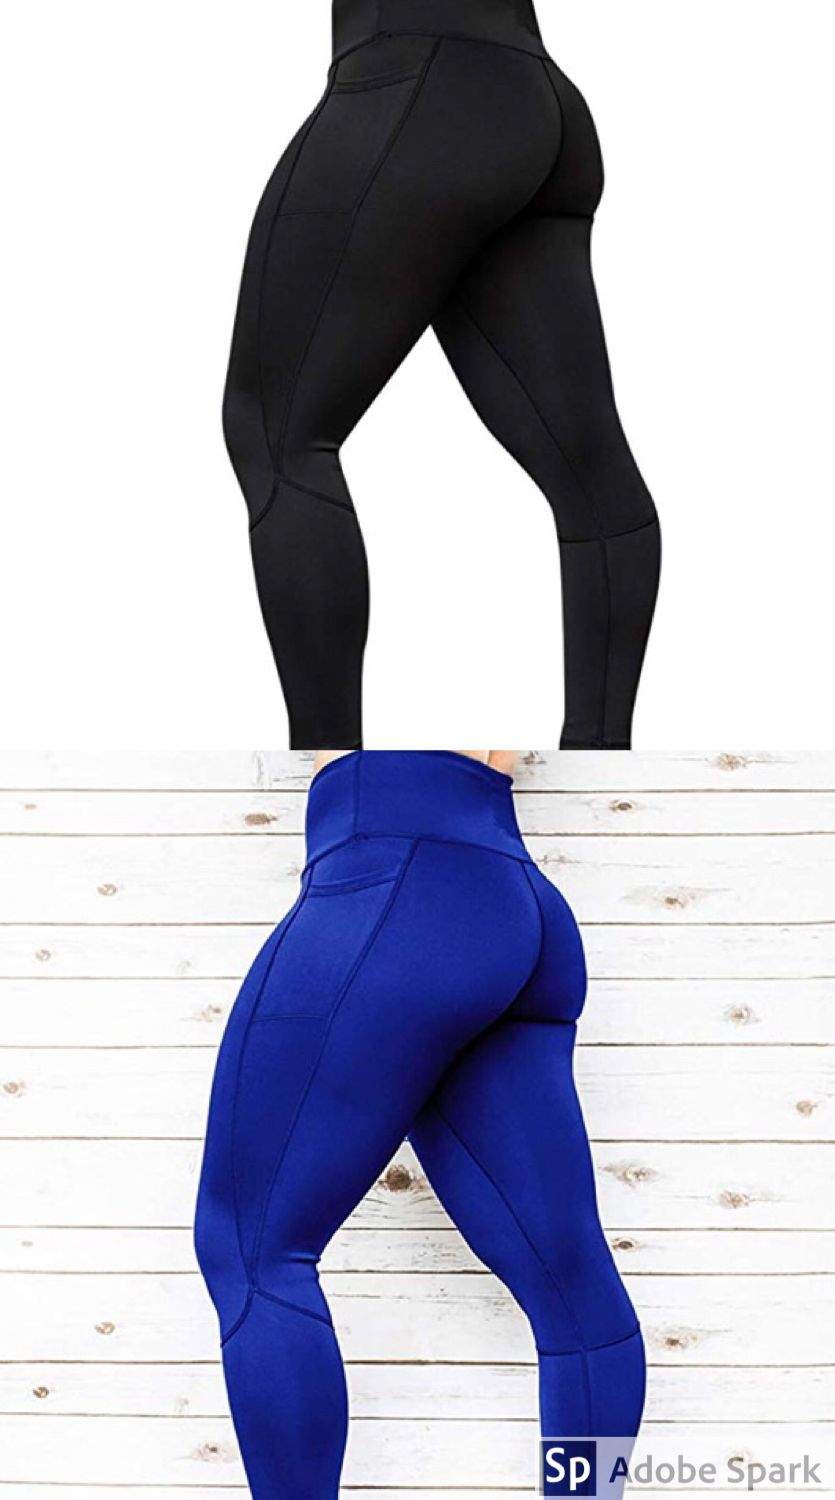 e6a611cefff7b1 Women's Black High Waist Yoga Pants Workout Leggings Fitness Sports Gym  Running Yoga Athletic Pants Non